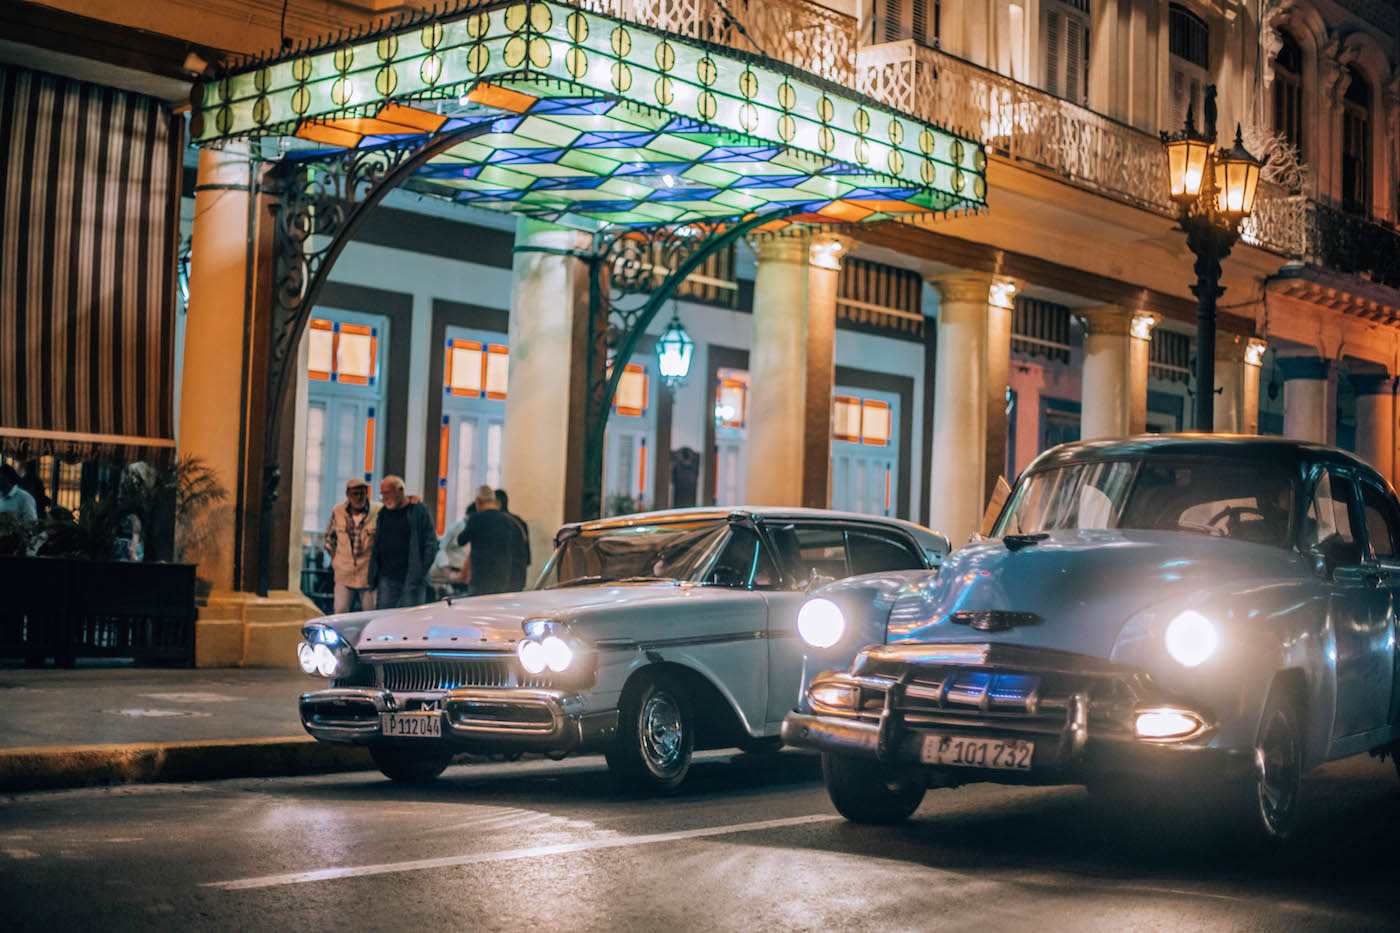 misconceptions-about-cuba-travel-3.jpeg